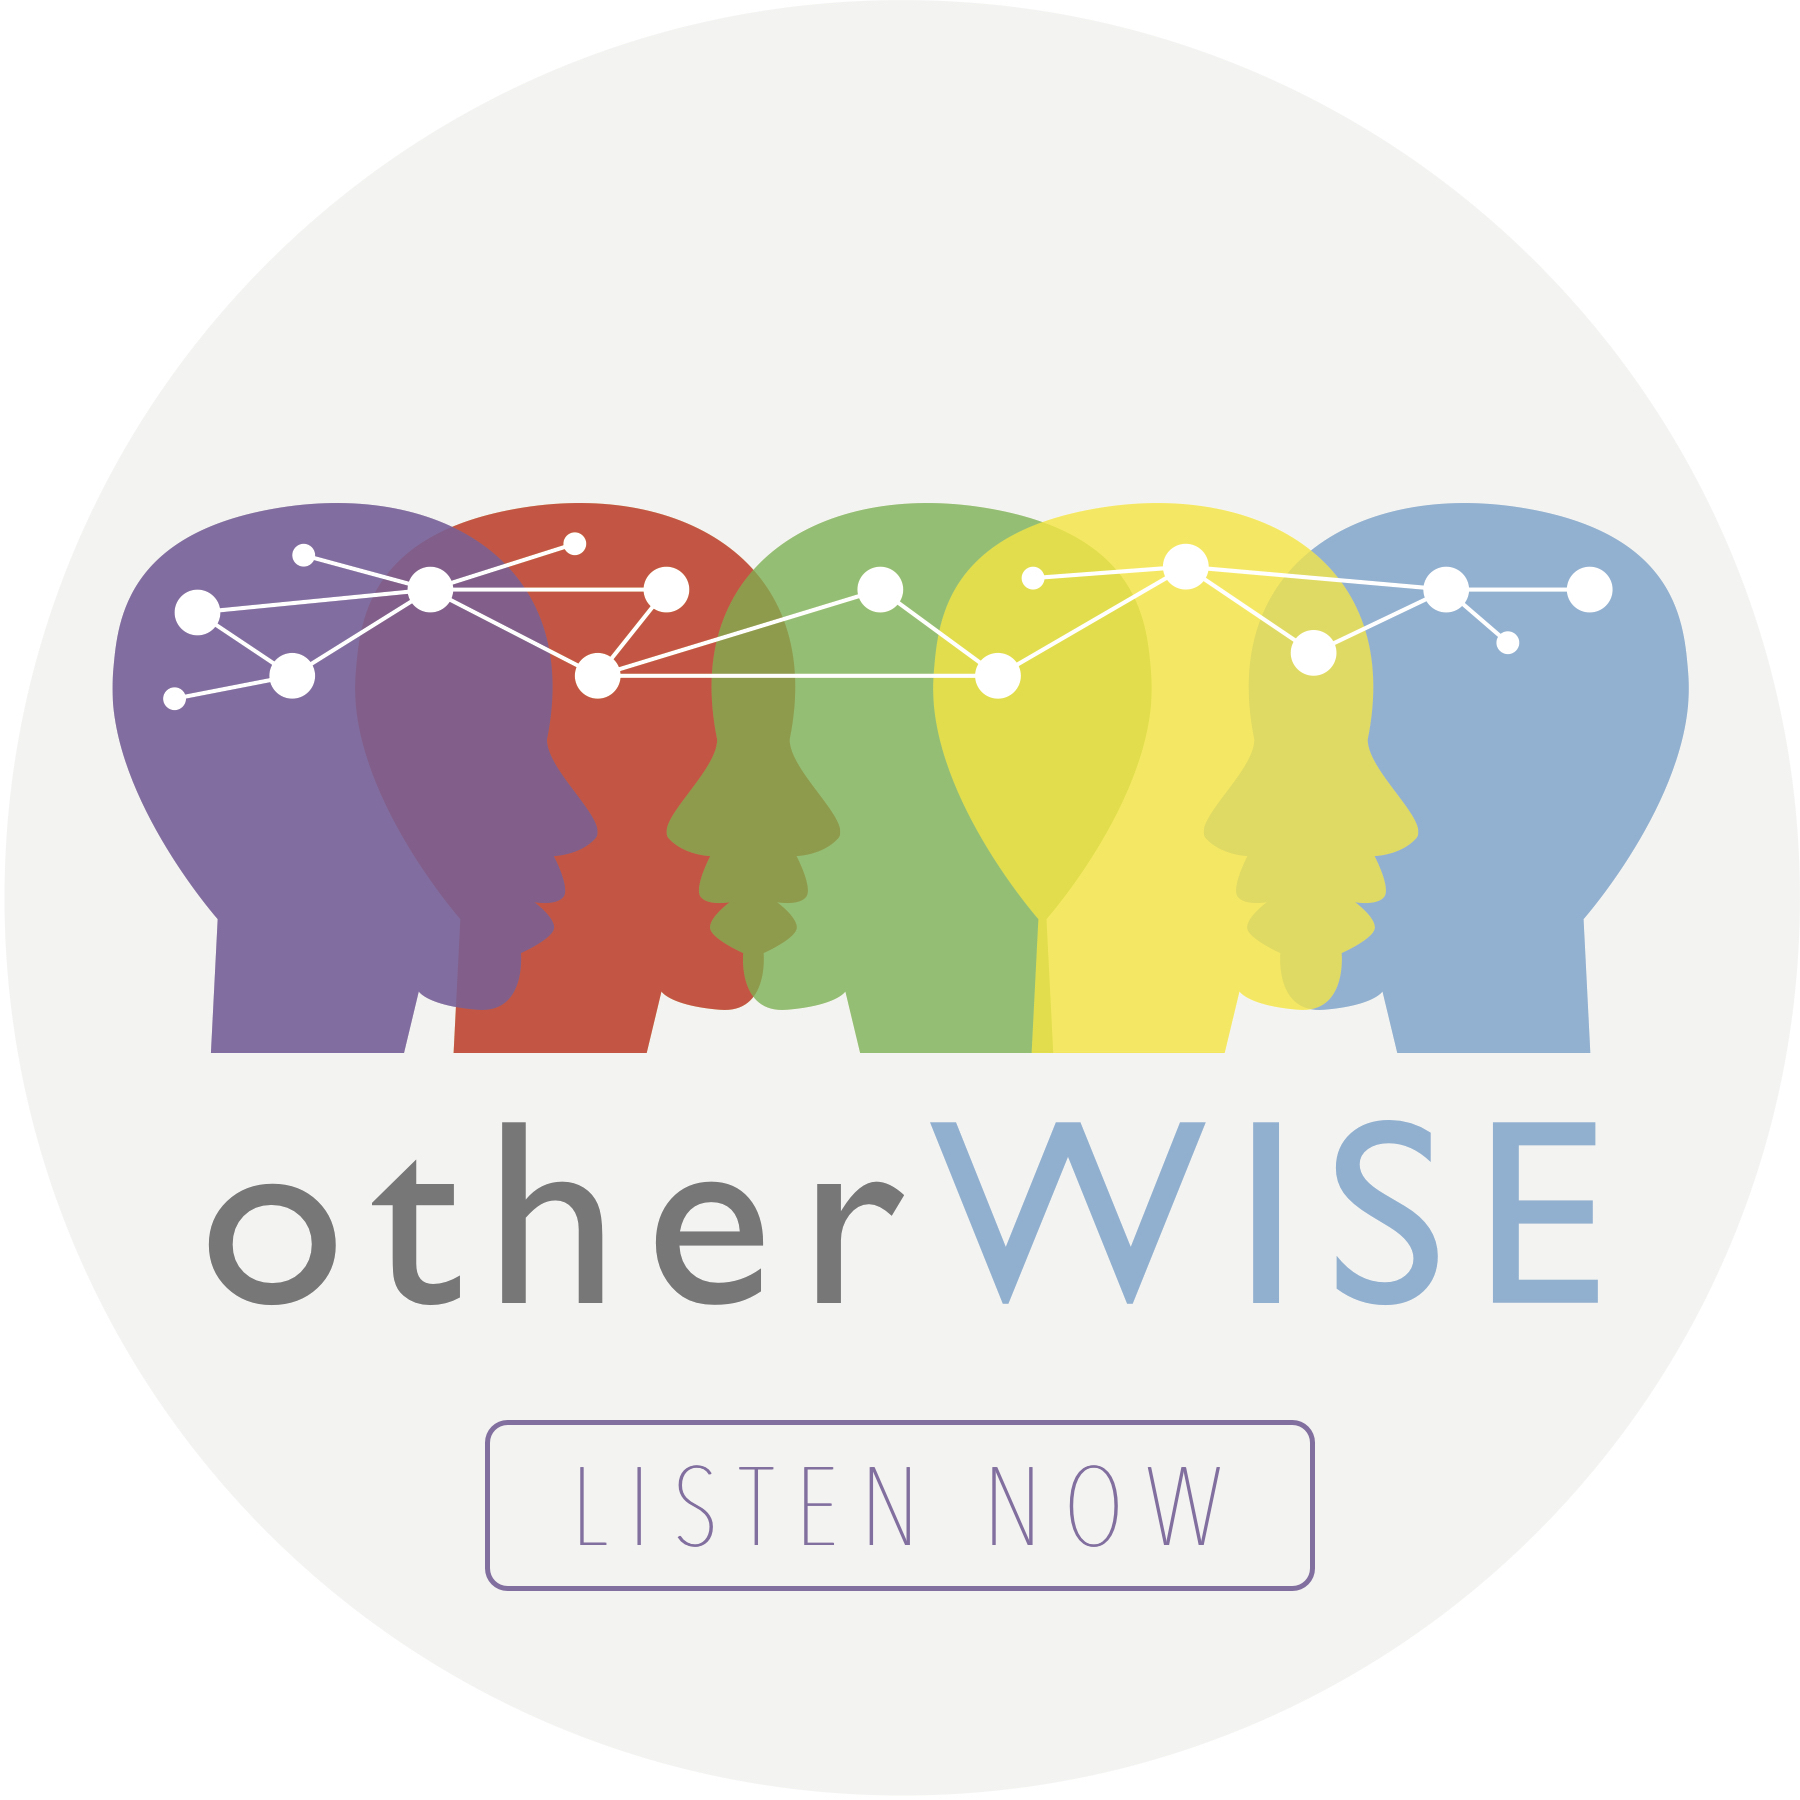 otherWISE logo + LISTEN NOW.jpg